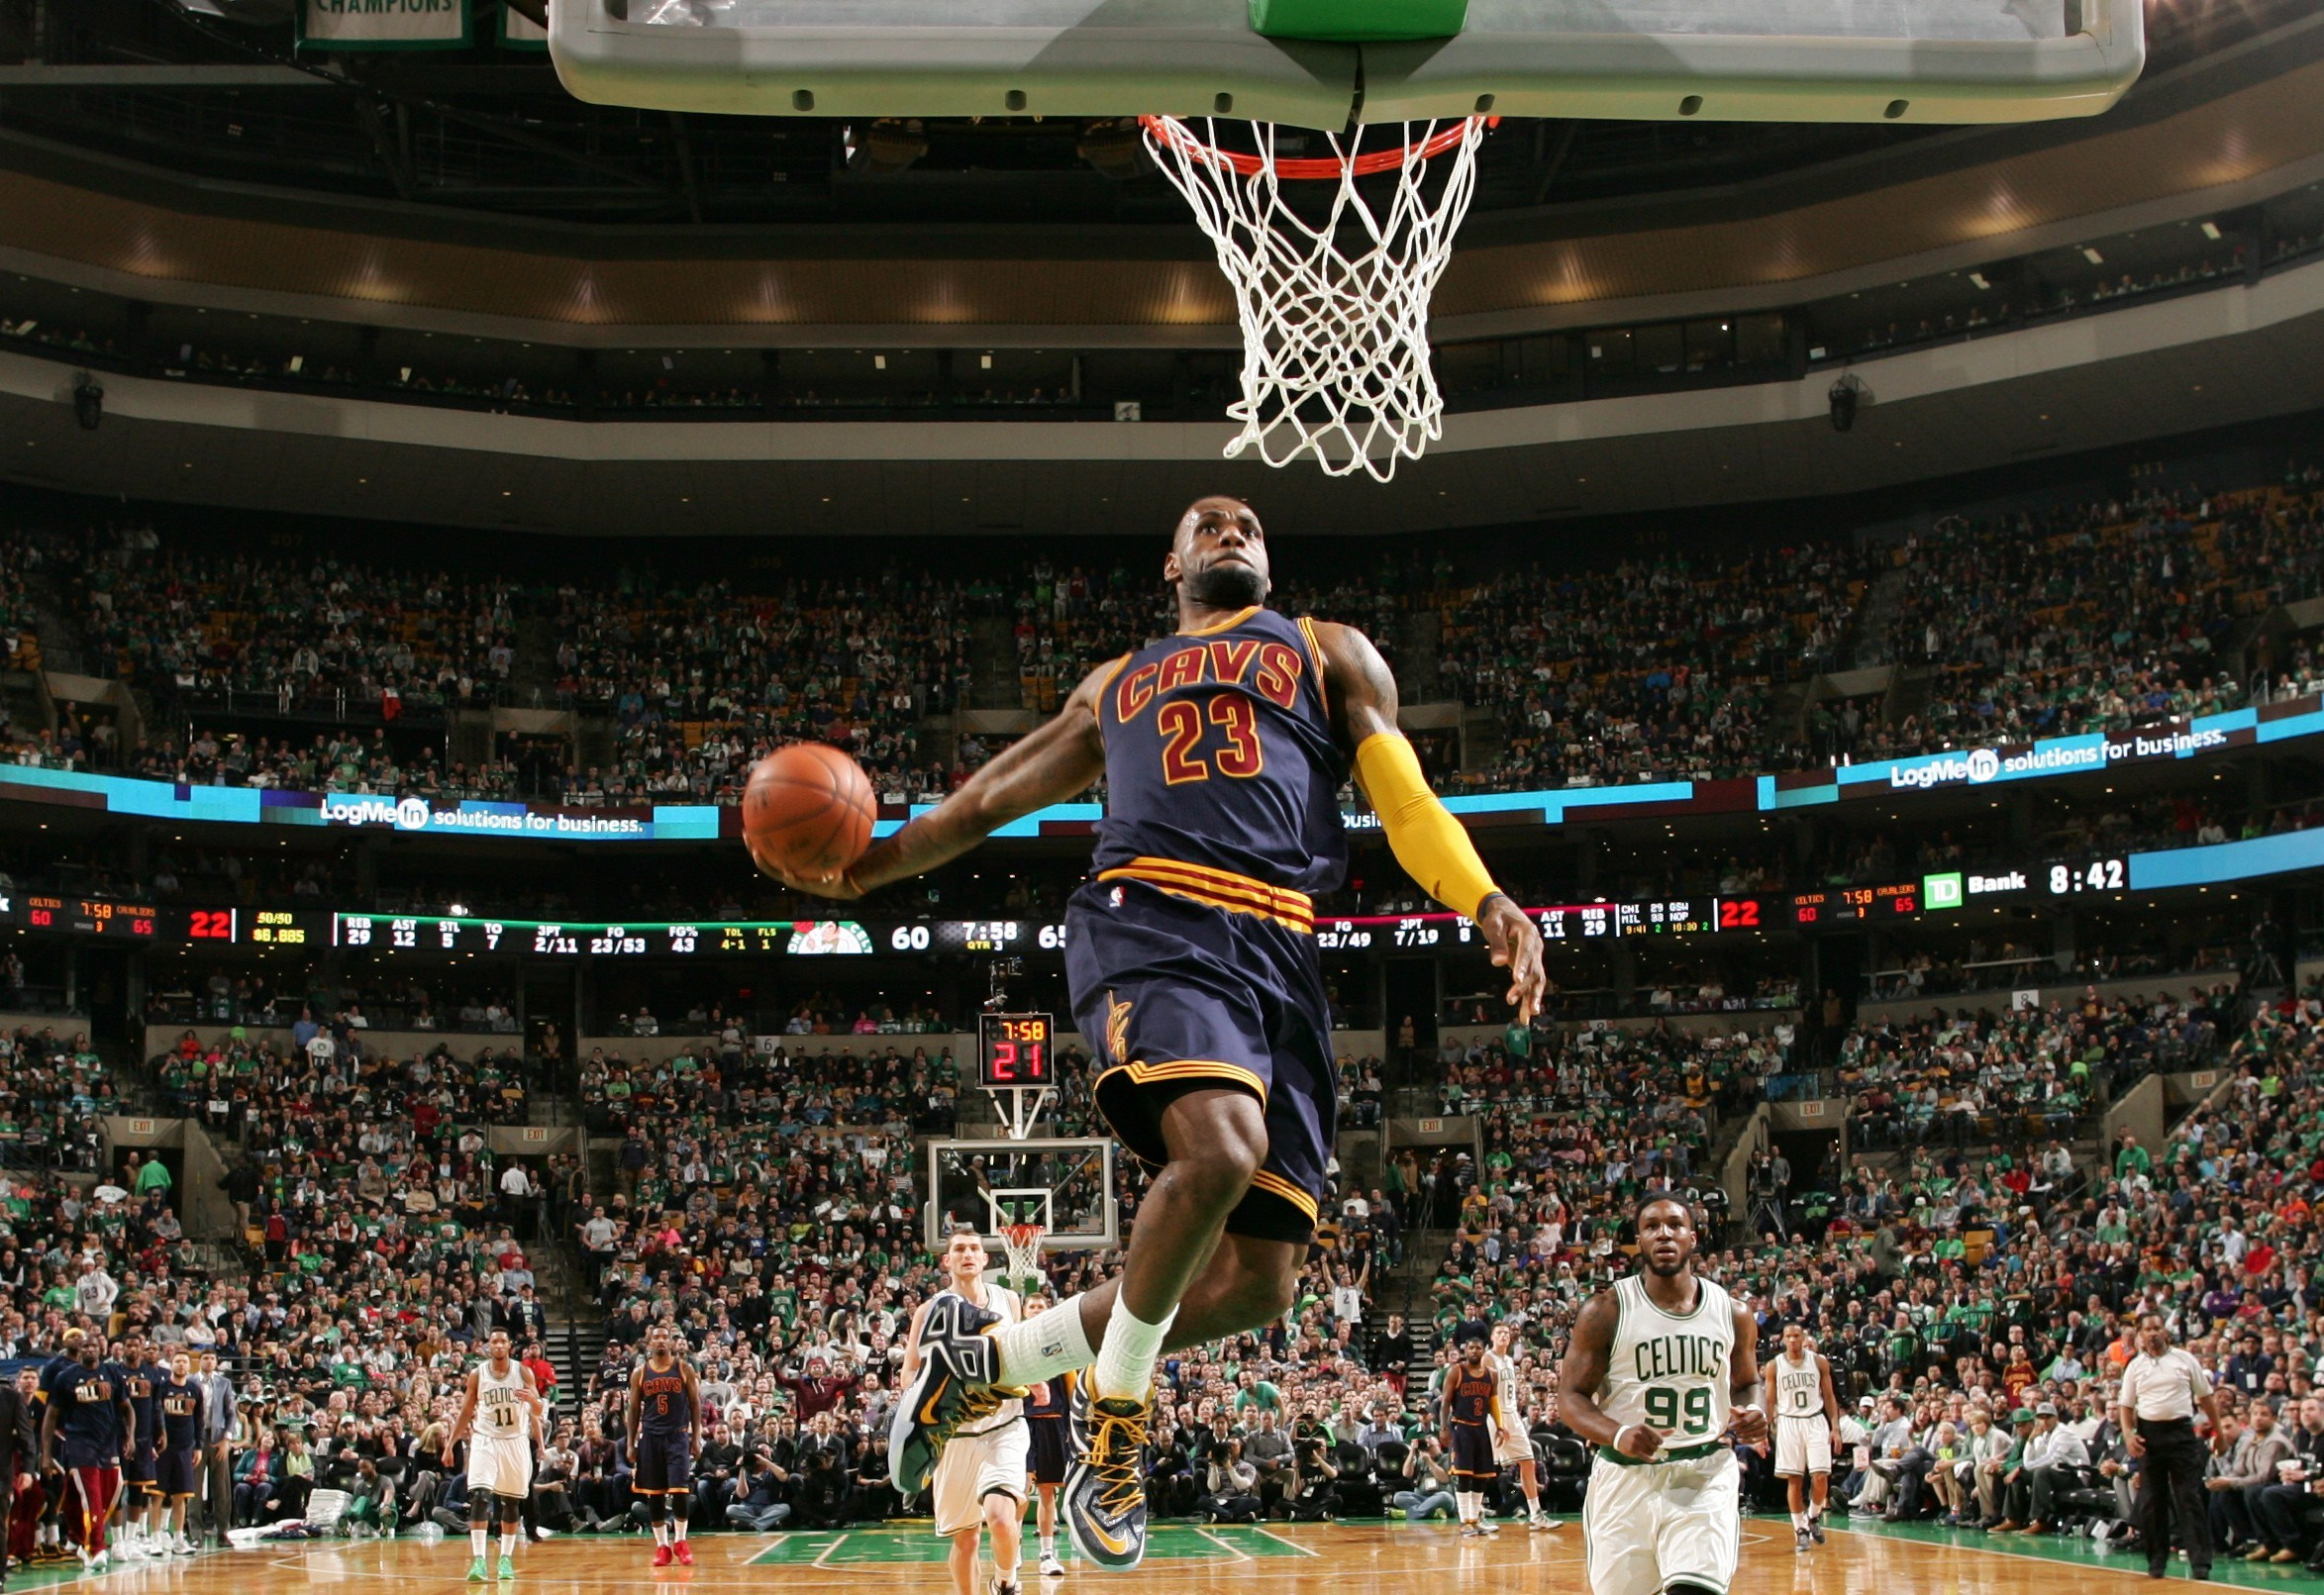 Not every player can be Lebron James and keeping highly competitive elite athletes motivate and focussed is a difficult challenge fro coaches and managers.